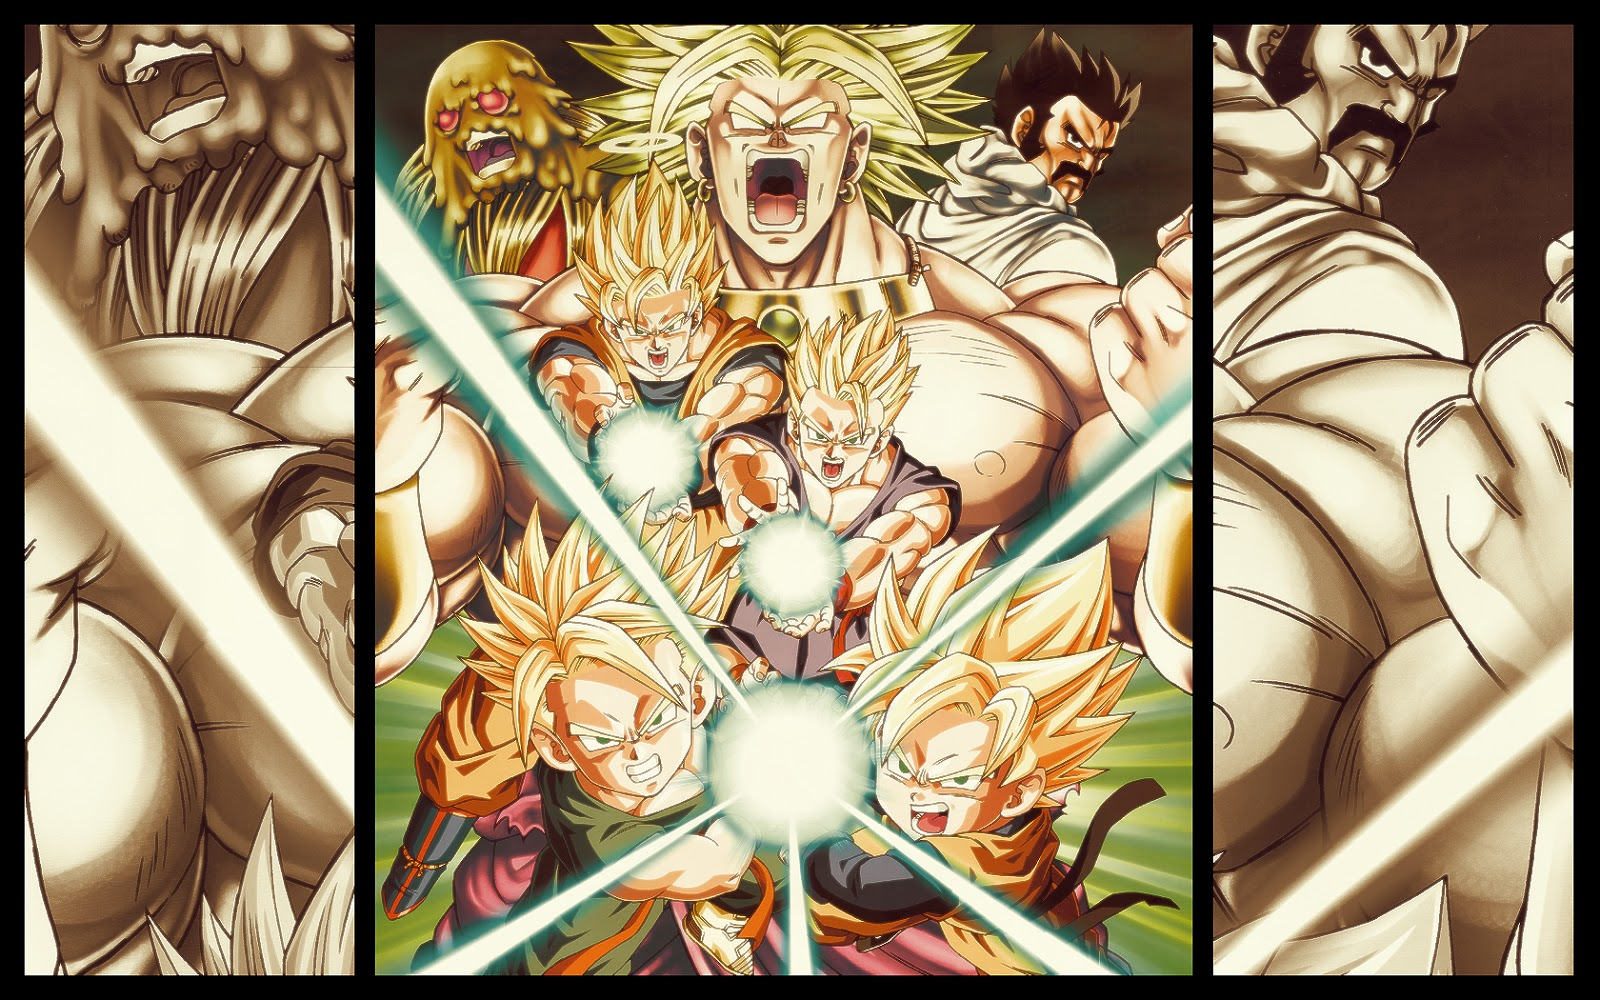 Epic Dbz Wallpapers High Resolution: Wallpapers Anime: Dragon Ball Z